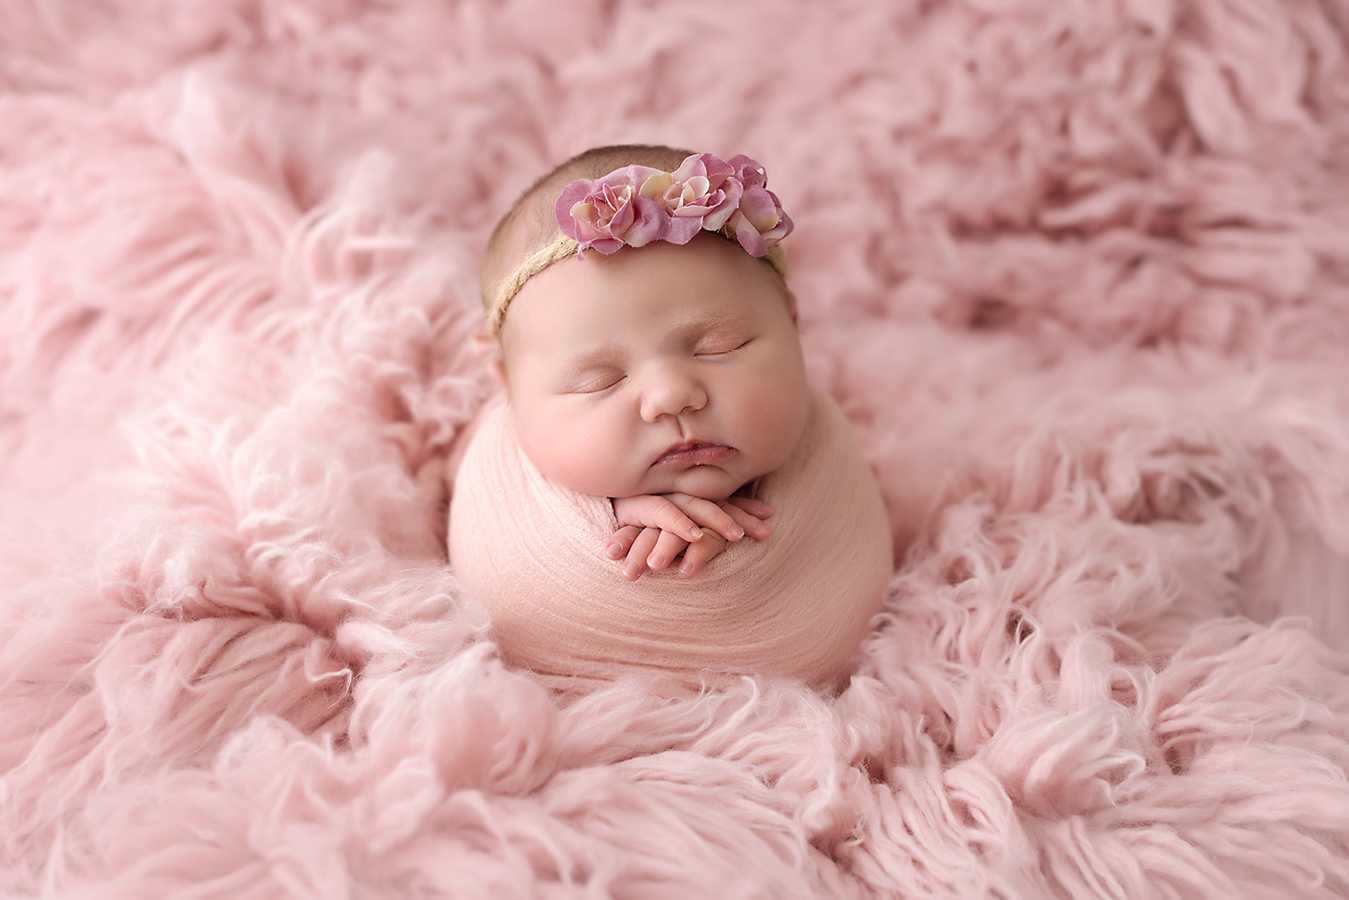 Newborn Photoshoot near me Stockport